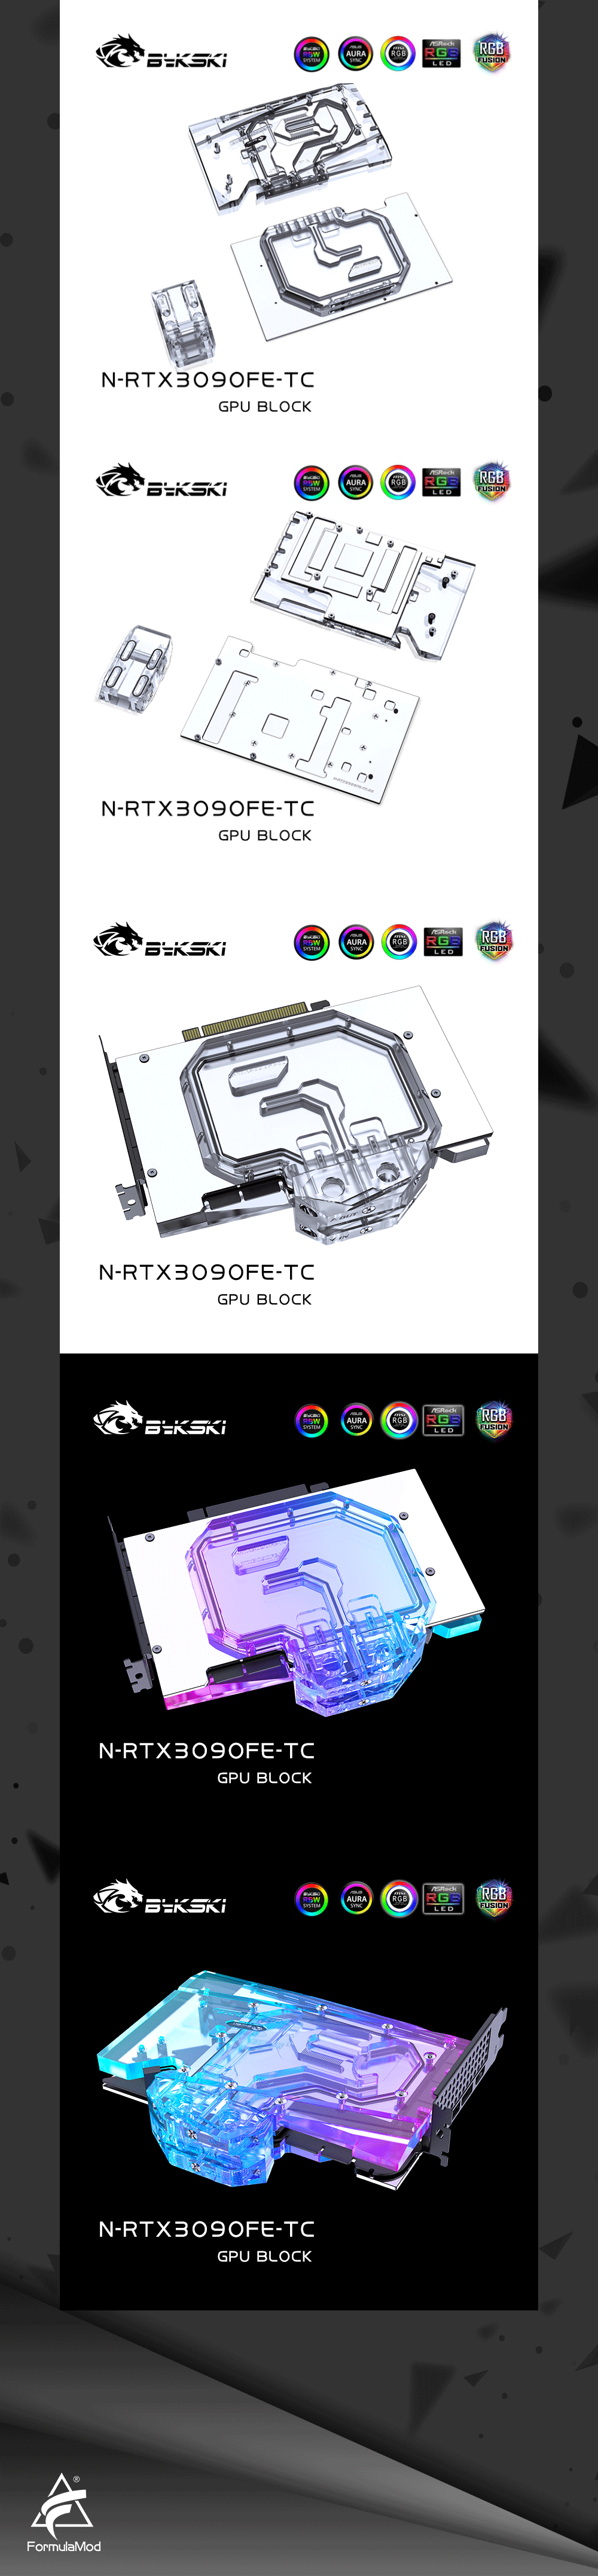 Bykski N-RTX3090FE-TC GPU Water Block with Waterway Copper Backplate Cooler For NVIDIA Geforce RTX 3090 Founders Edition